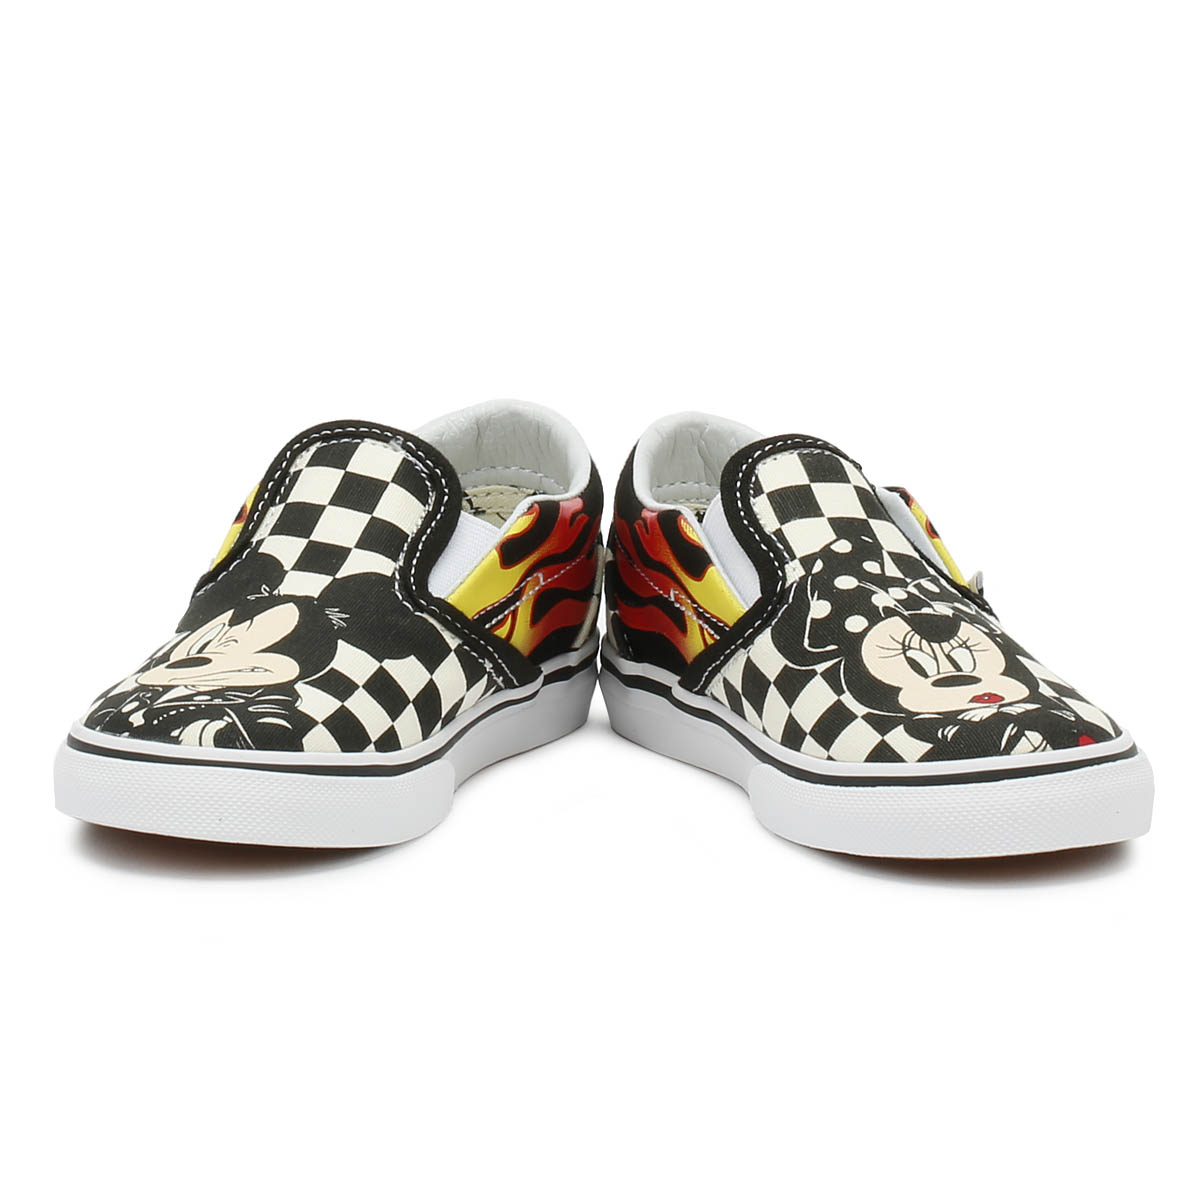 Vans Disney Kids Trainers Mickey   Minnie Checker Flame Toddlers Slip On  Shoes 80201e75eaab3